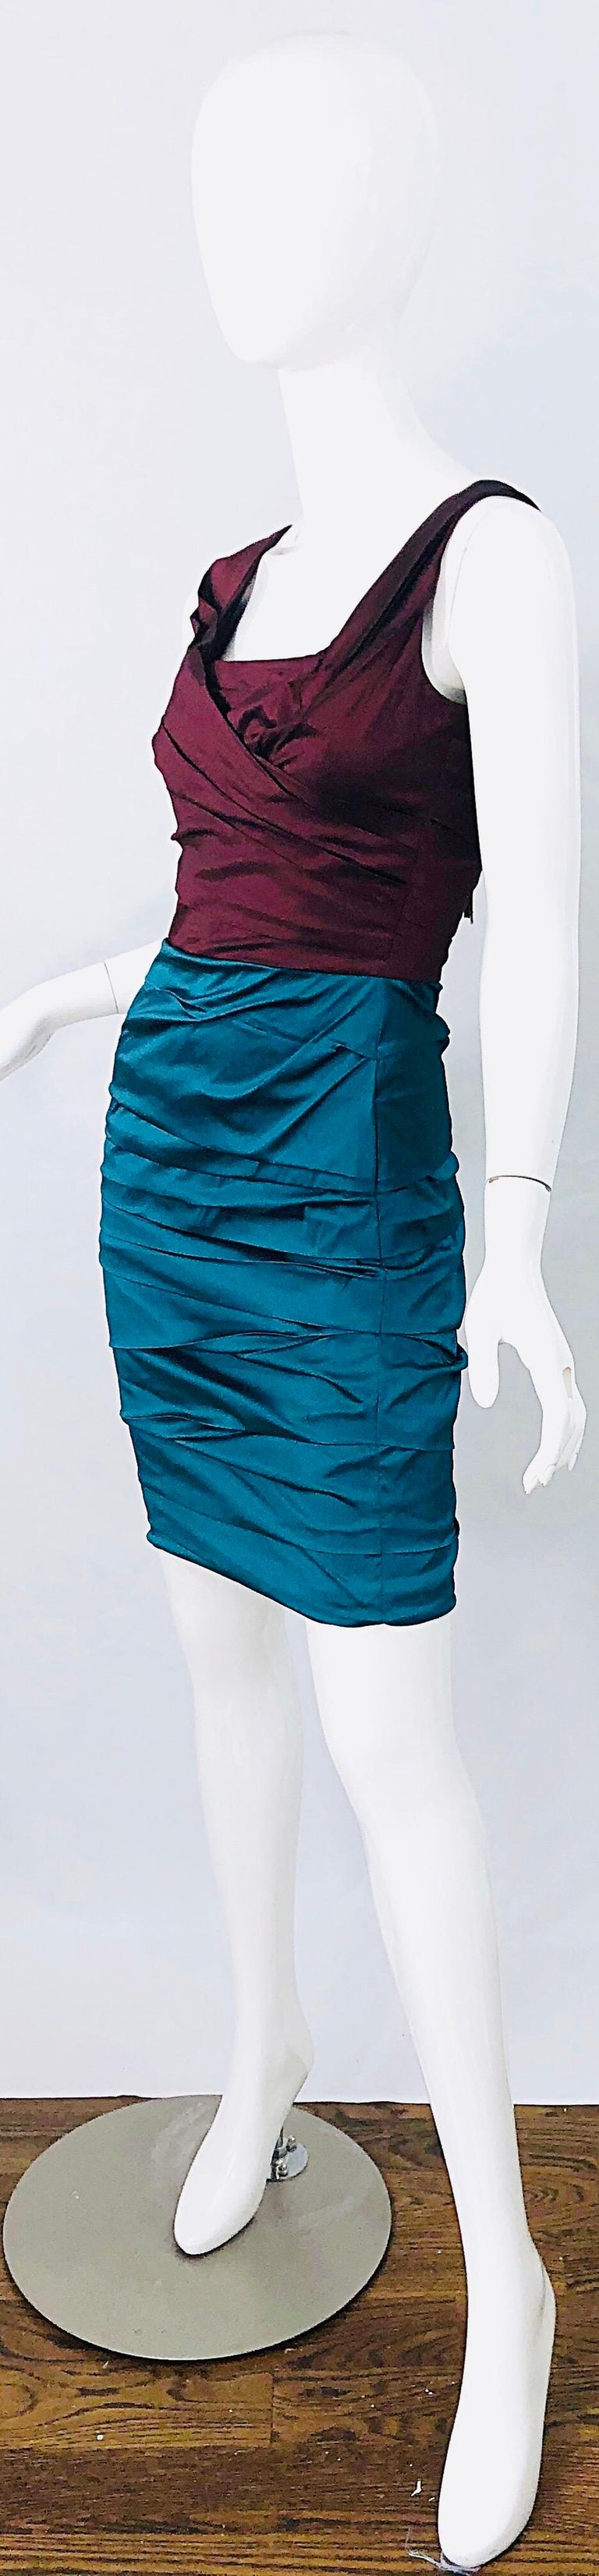 NWT Dolce and Gabbana 1990s Burgundy Turquoise Blue Colorblock Vintage Dress For Sale 2